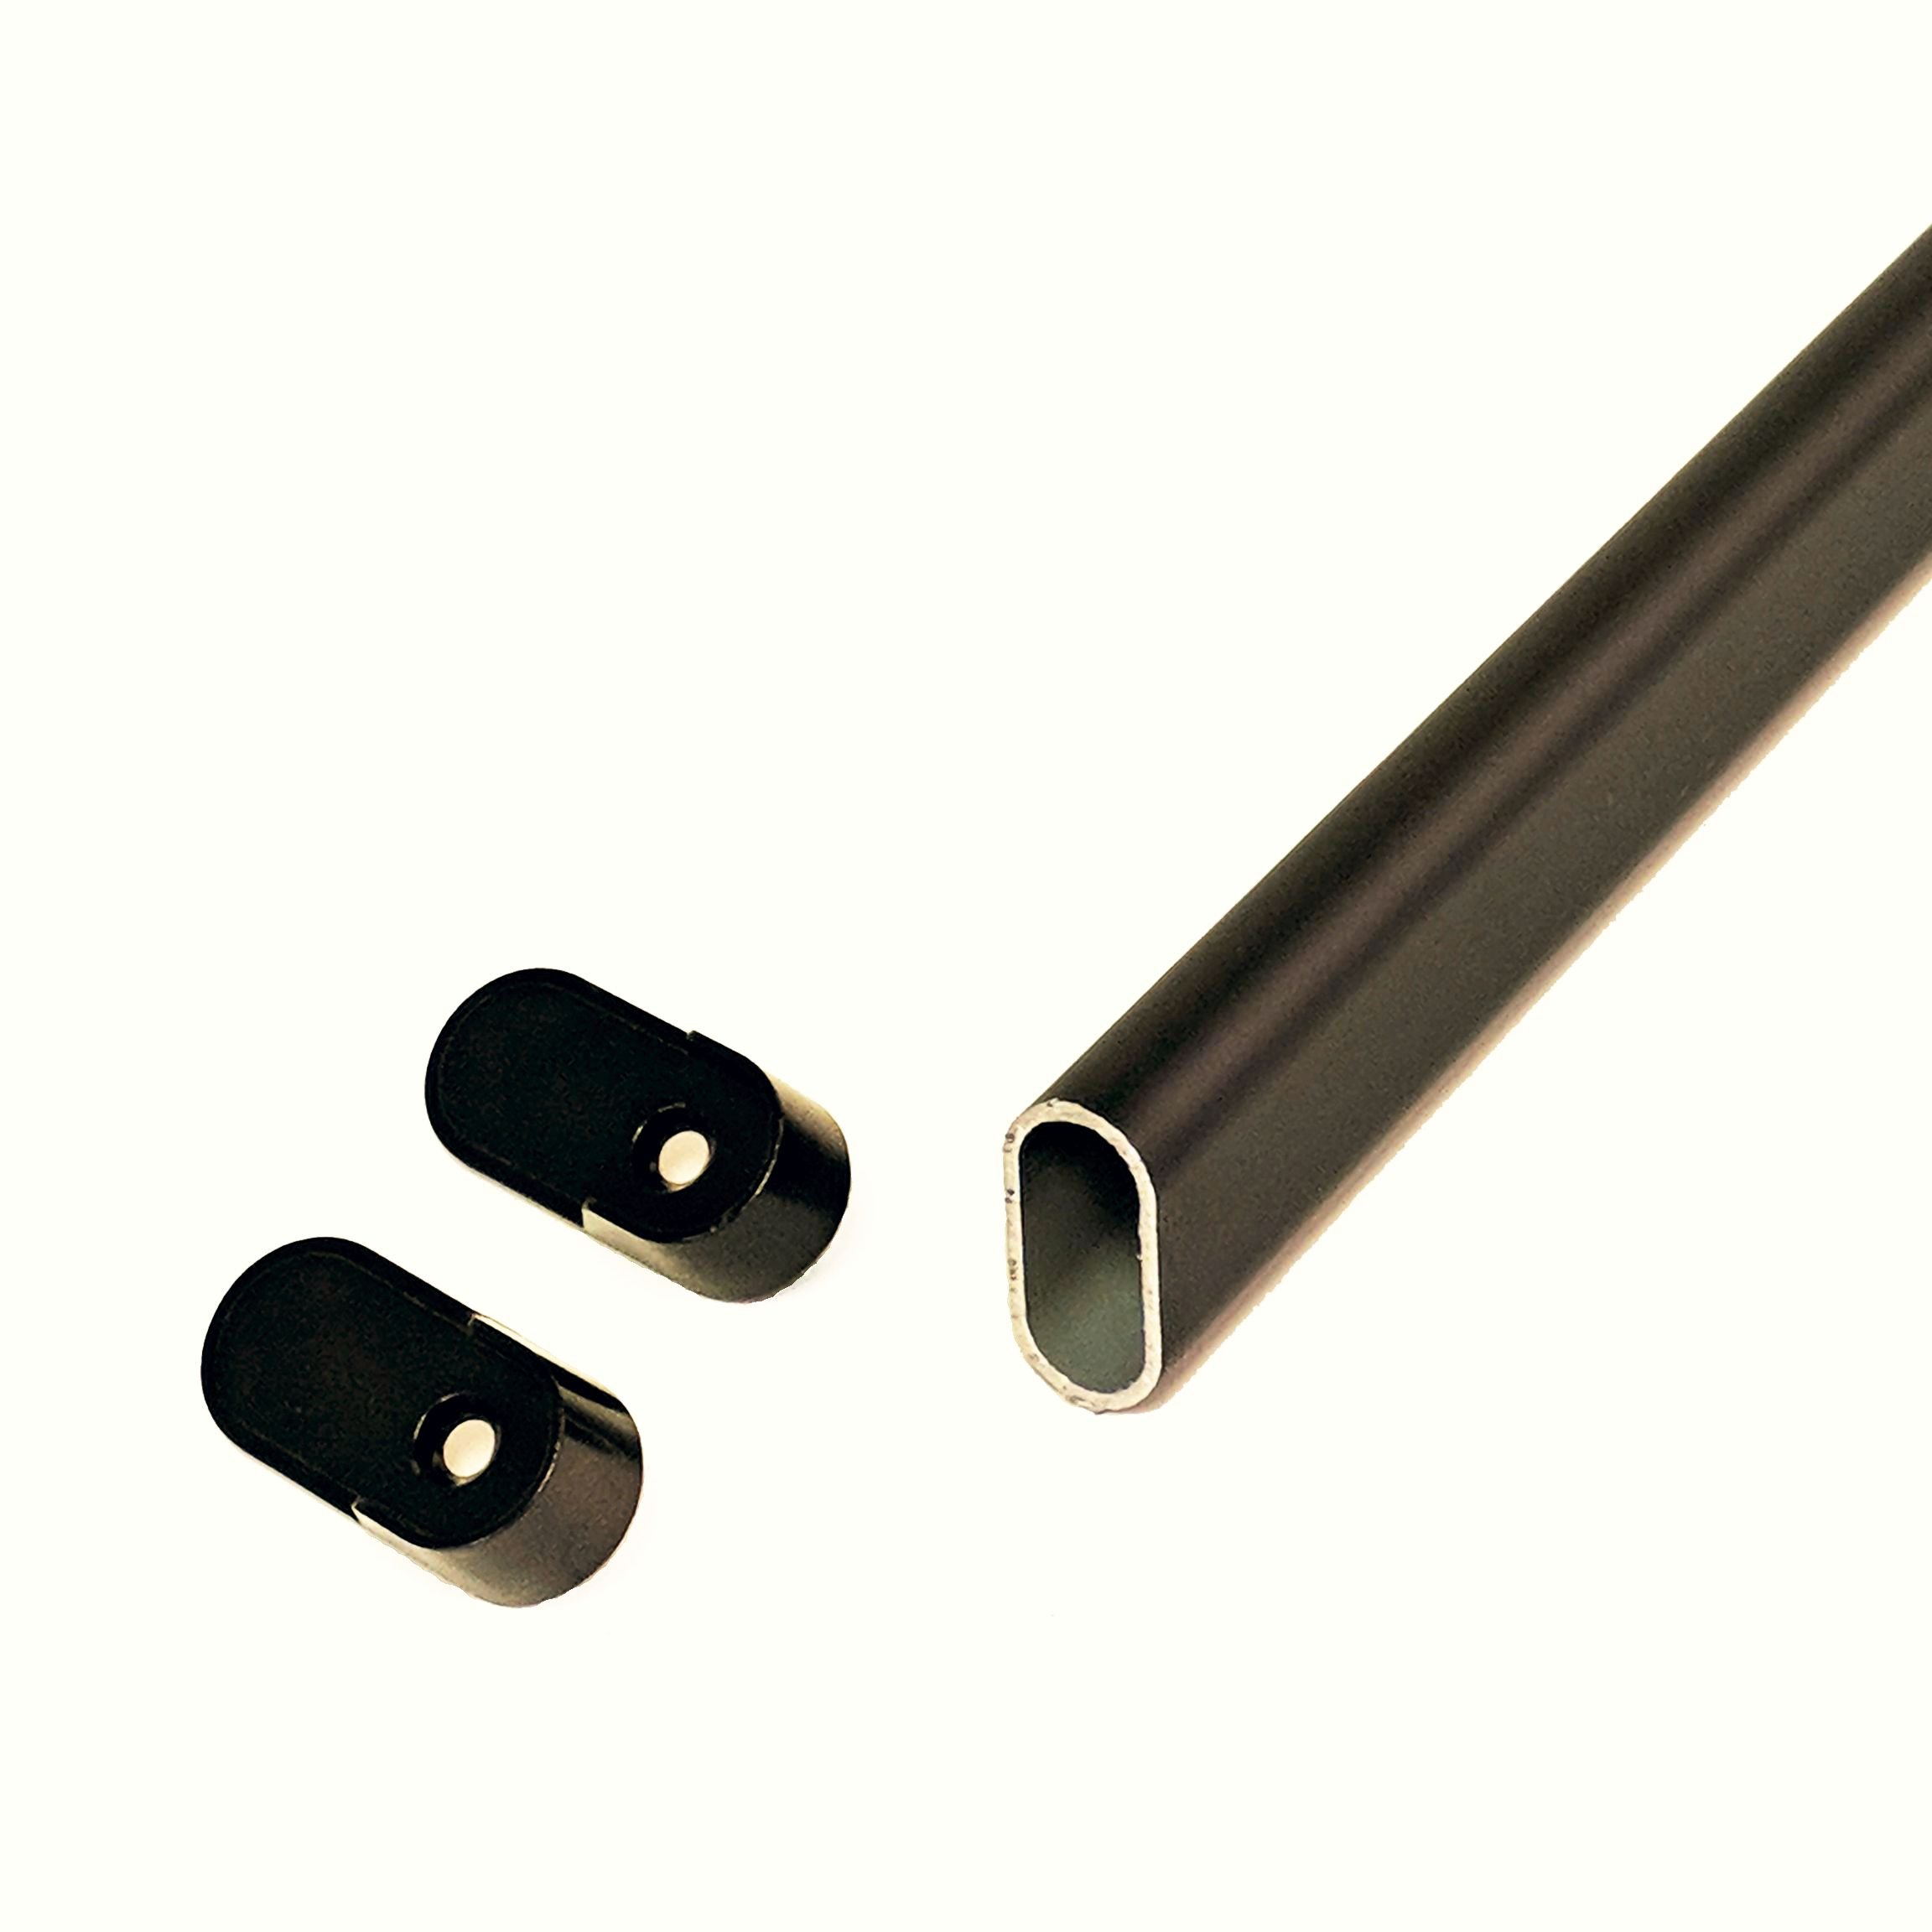 CLOSETbay Oval Closet Rod Kit, Oil Rubbed Bronze (36)